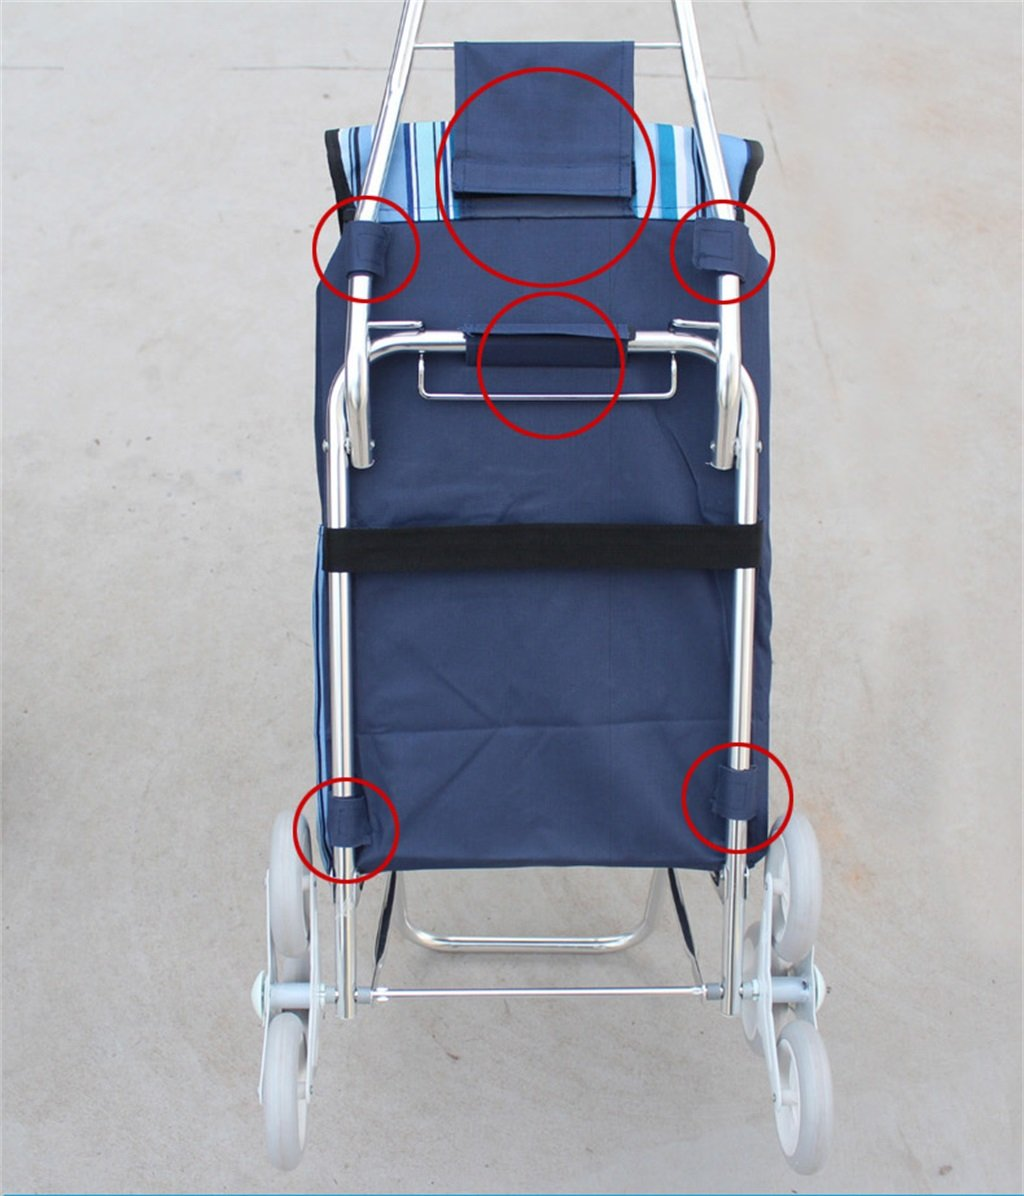 Handcart Folding Shopping Cart Hand Truck Six Rounds Climbing Stairs Trolley Grocery Shopping Trailer Elderly Bag Car Portable Cart Seven Colors Optional 35 Kg Load (Color : A) by Hw Ⓡ Handcart (Image #3)